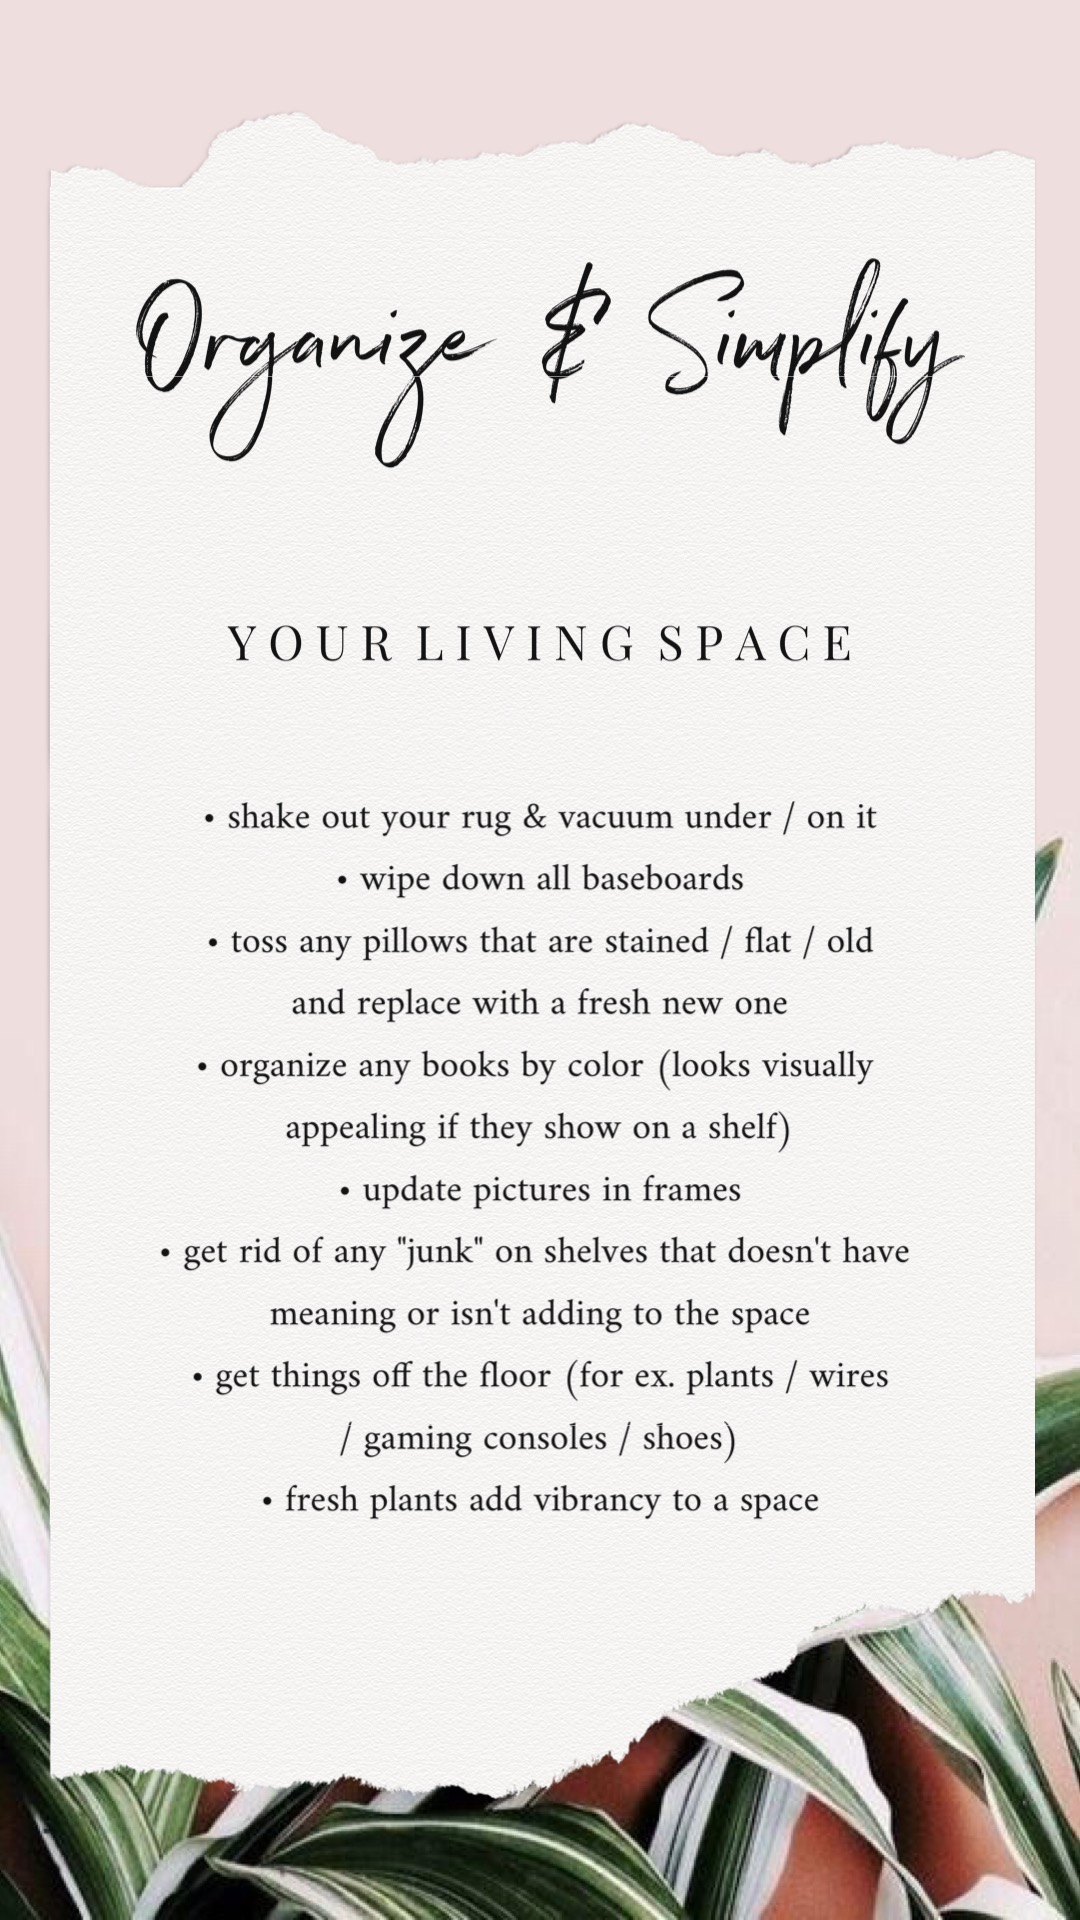 Bre Sheppard - How To Simplify & Organize Your Home - Your Living Space.JPG